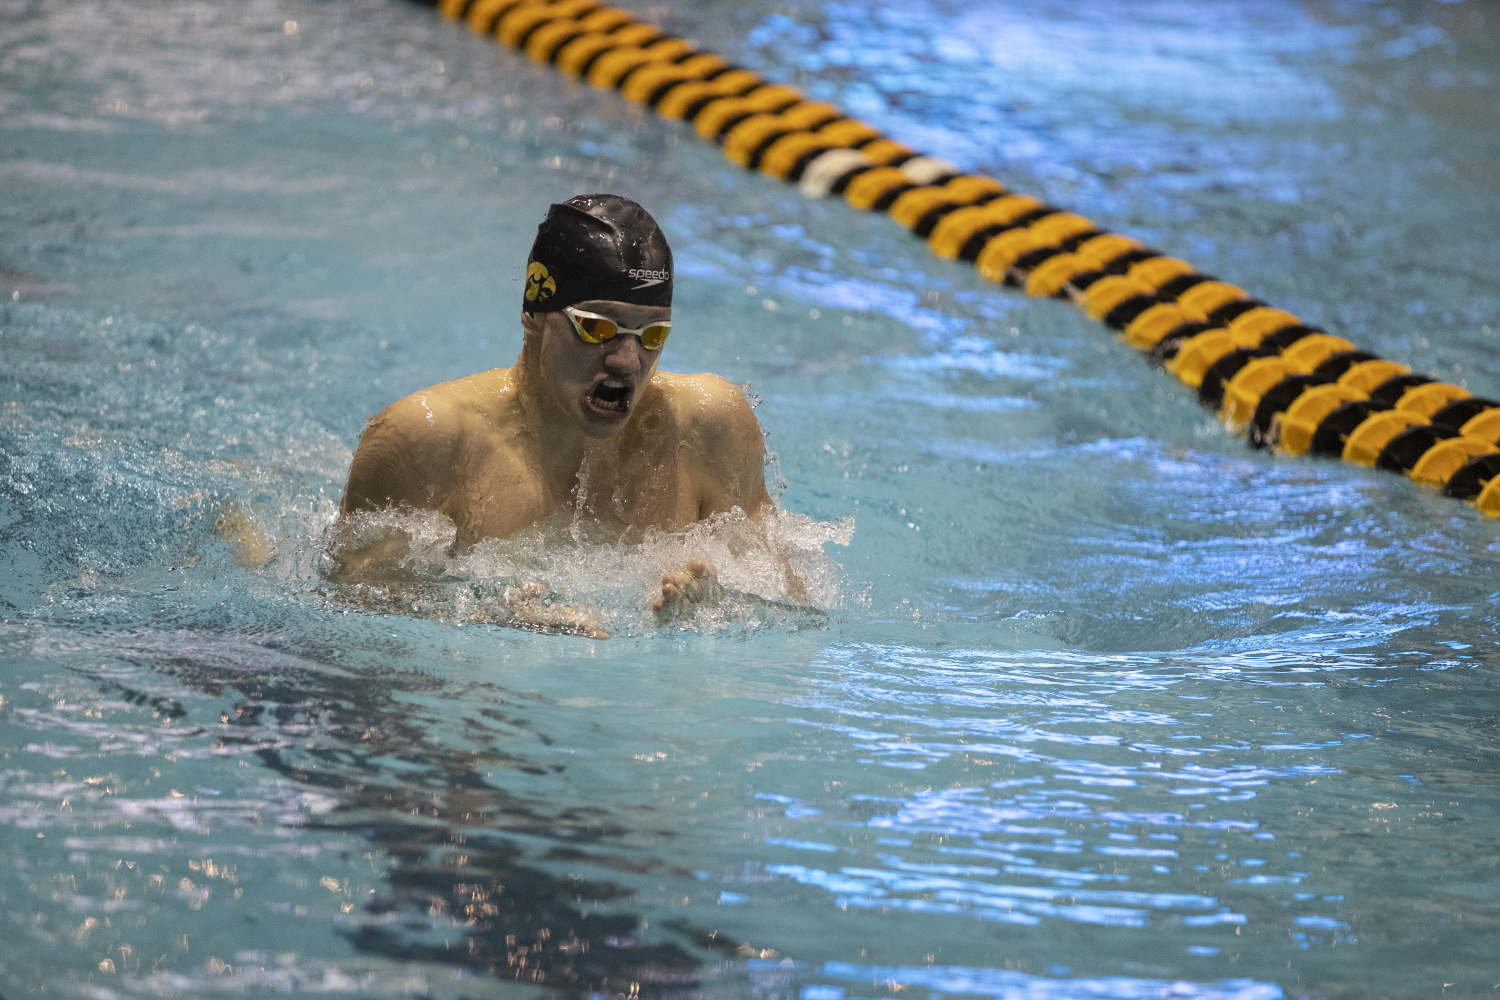 Anze Fers Erzen competes in the Men's 200 Individual Medley bonus final during the second day of the 2019 Big Ten Men's Swimming and Diving Championships at the CRWC on Thursday, February 28, 2019. Fers Erzen placed sixth in the bonus final with a time of 1:46:92. (Katie Goodale/The Daily Iowan)